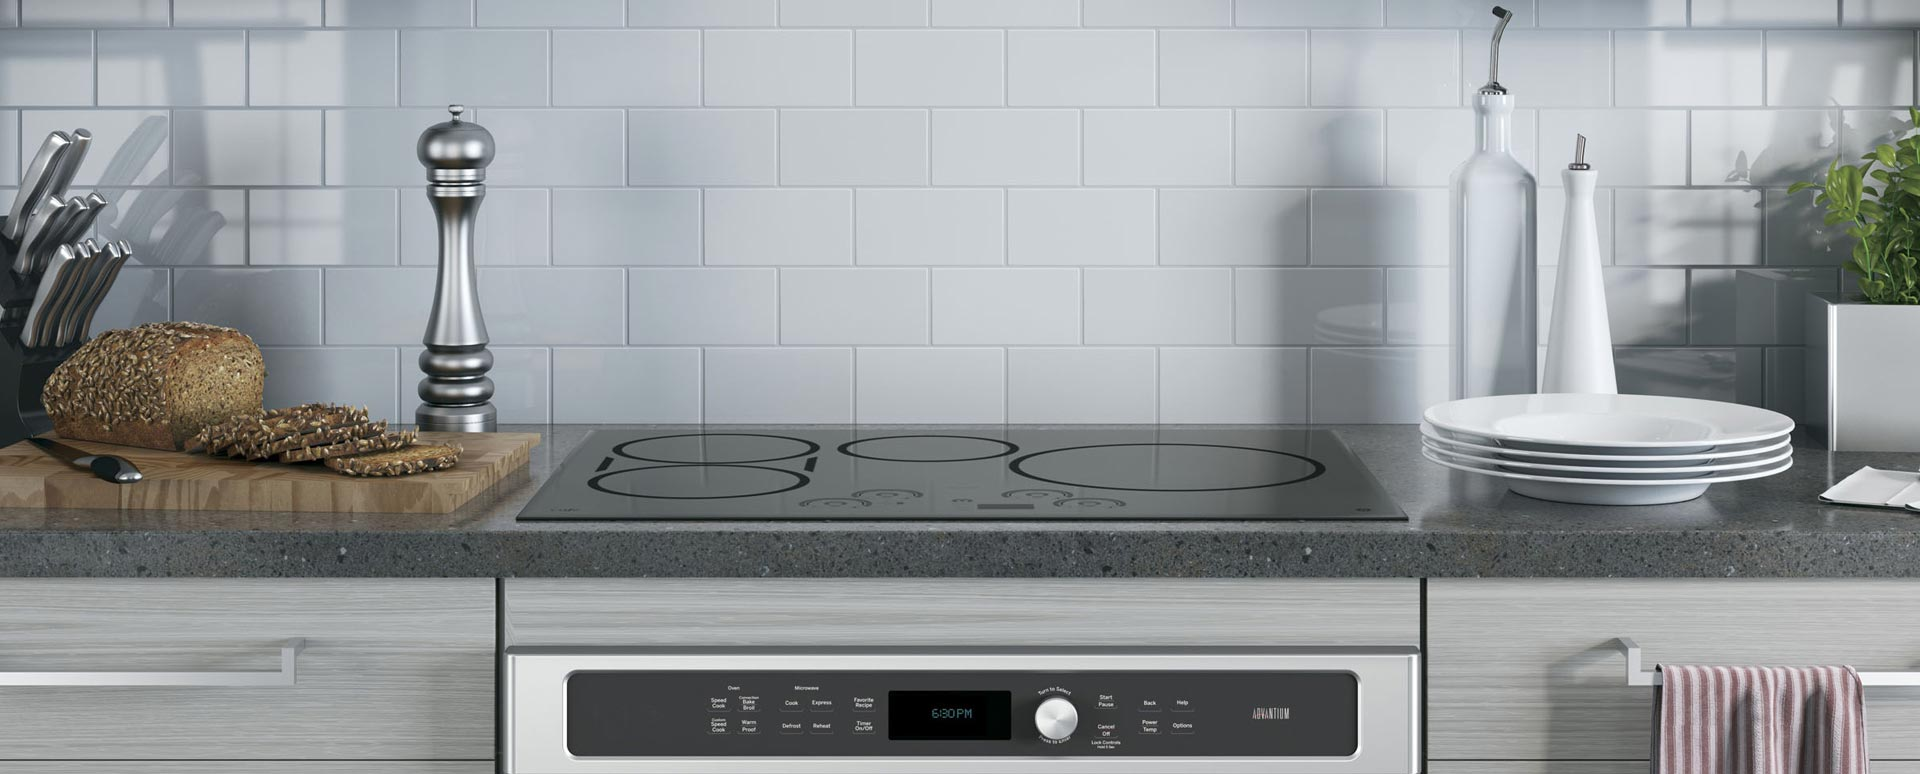 ReNew Oven Cleaning